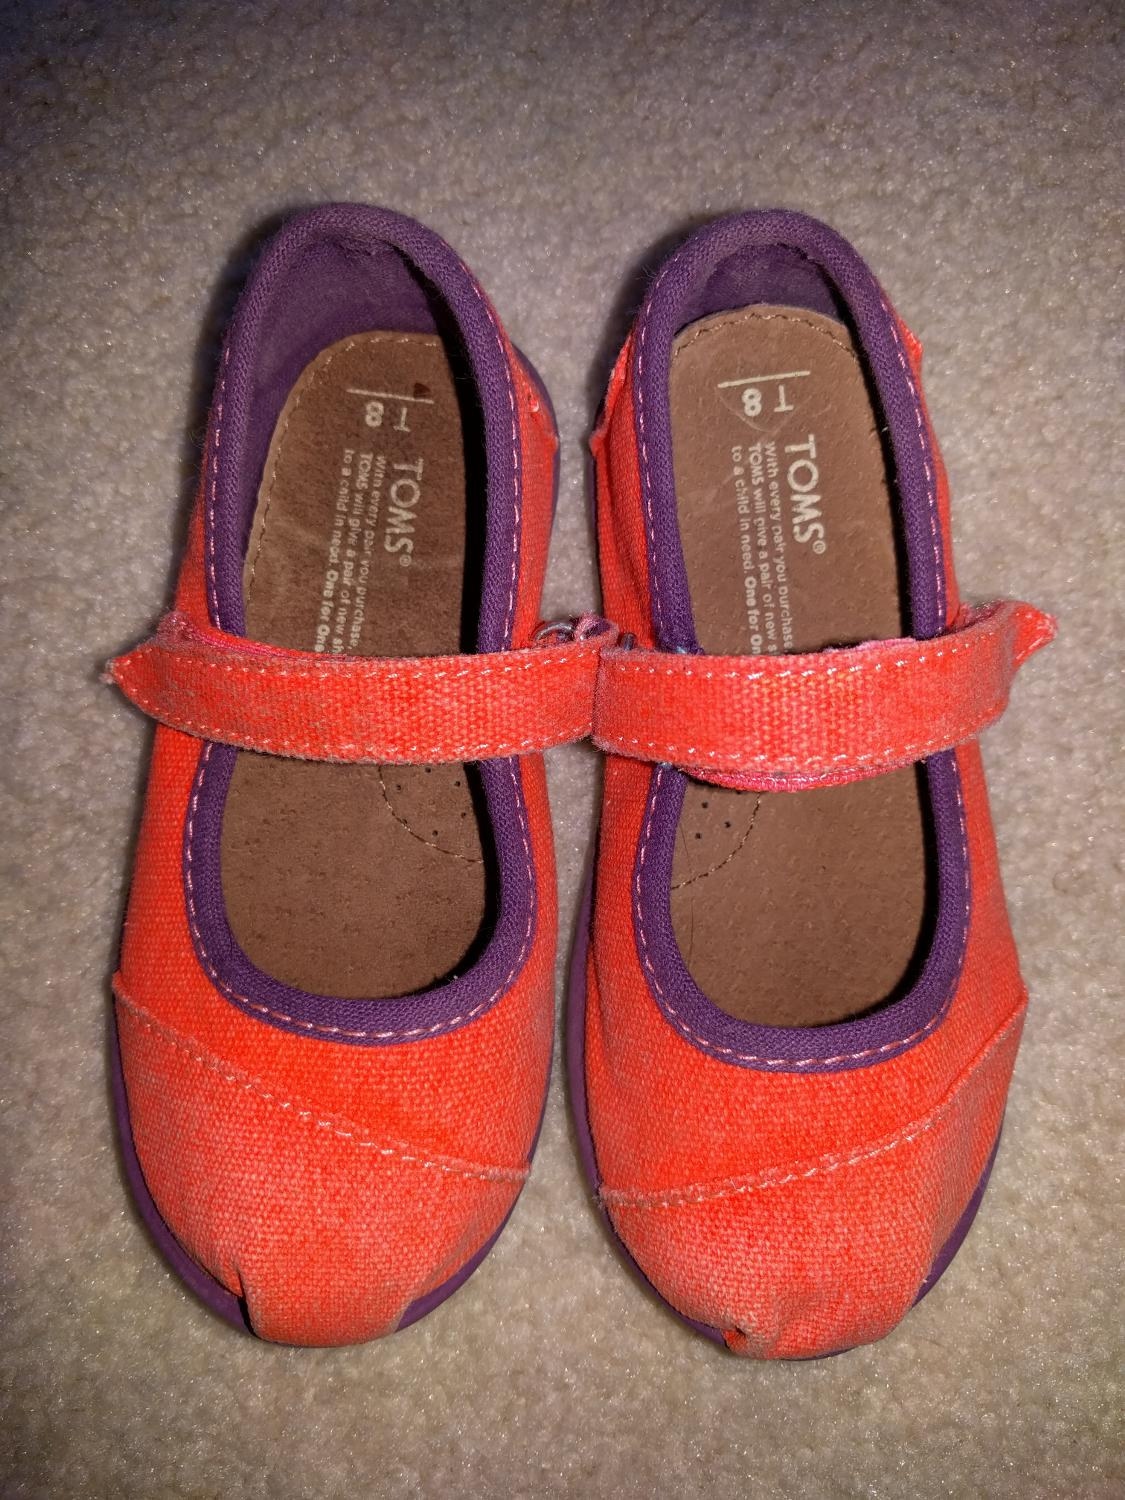 Where To Buy Toms Shoes In Seattle